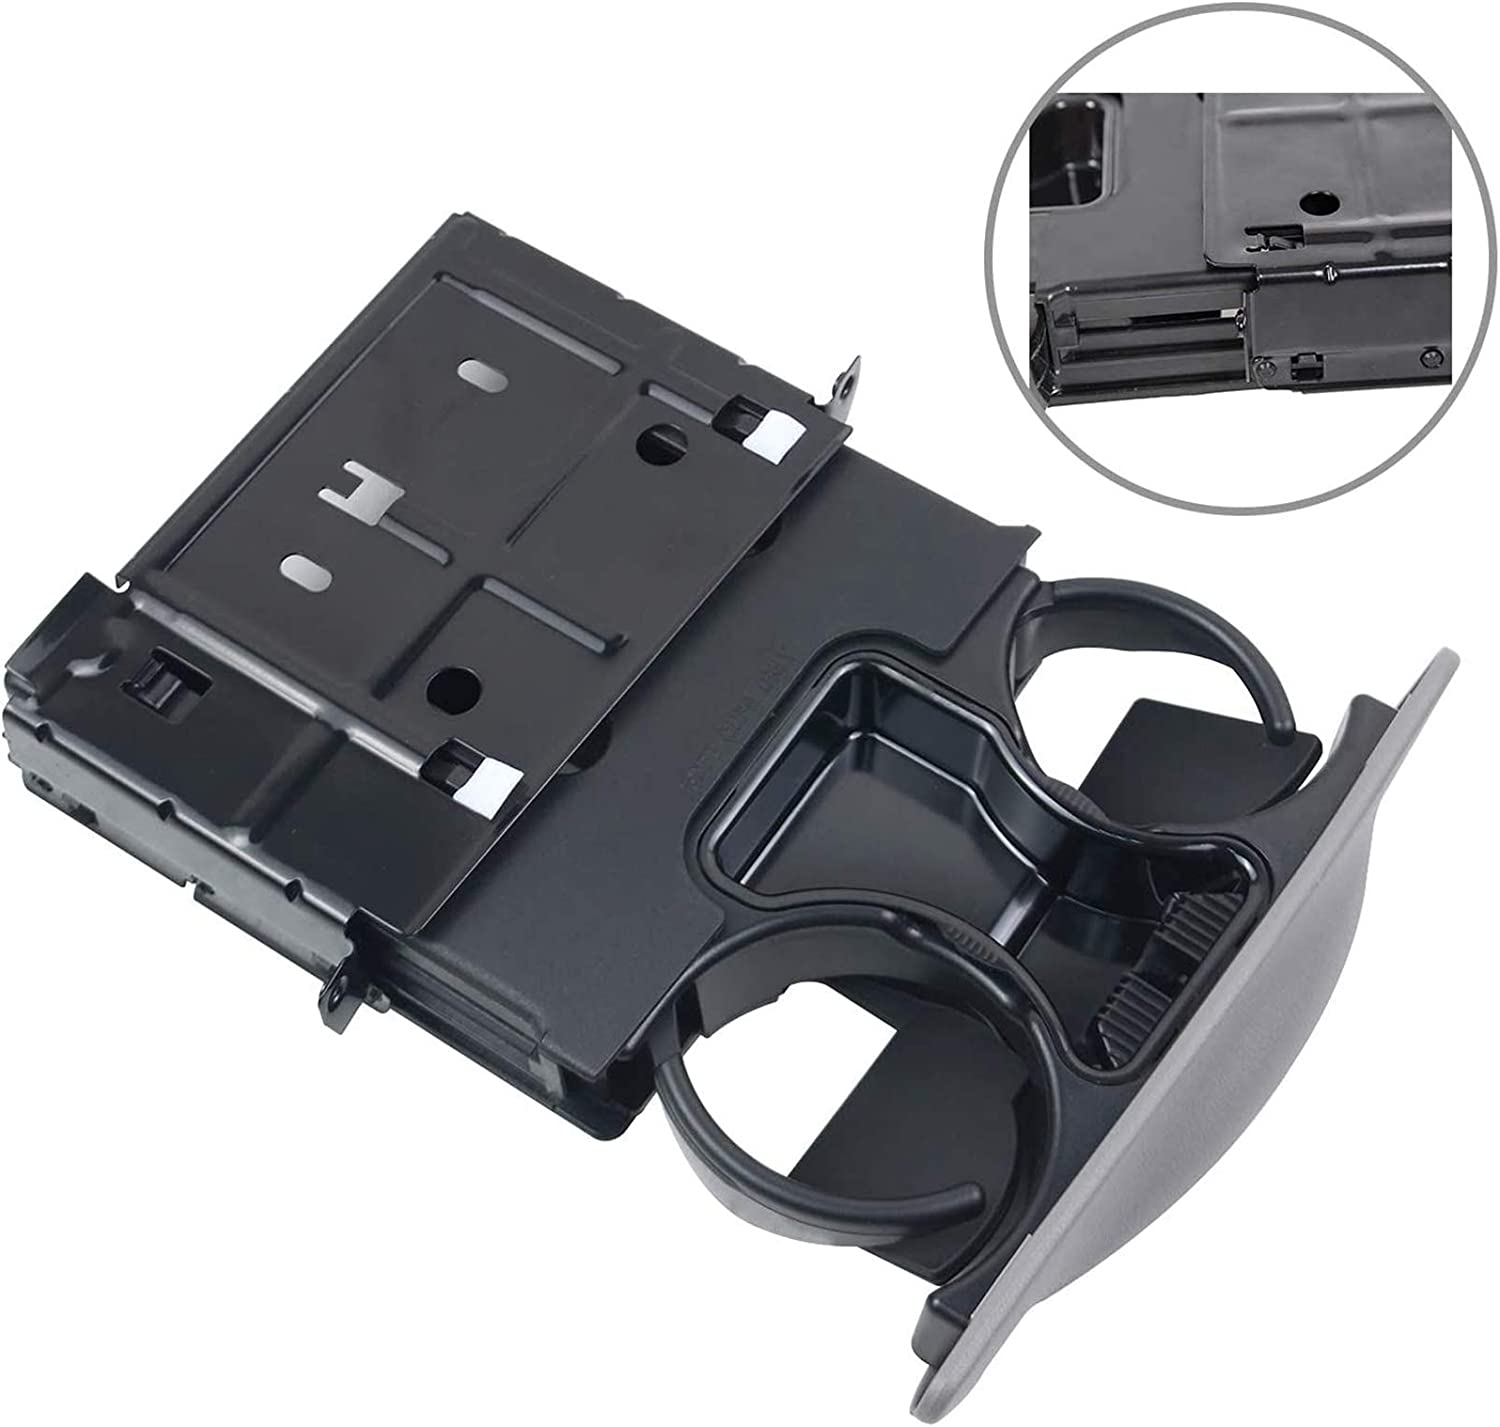 YC3Z2513560CAD Graphite Gray Dashboard Cup Ford Holder Fits discount Max 67% OFF for